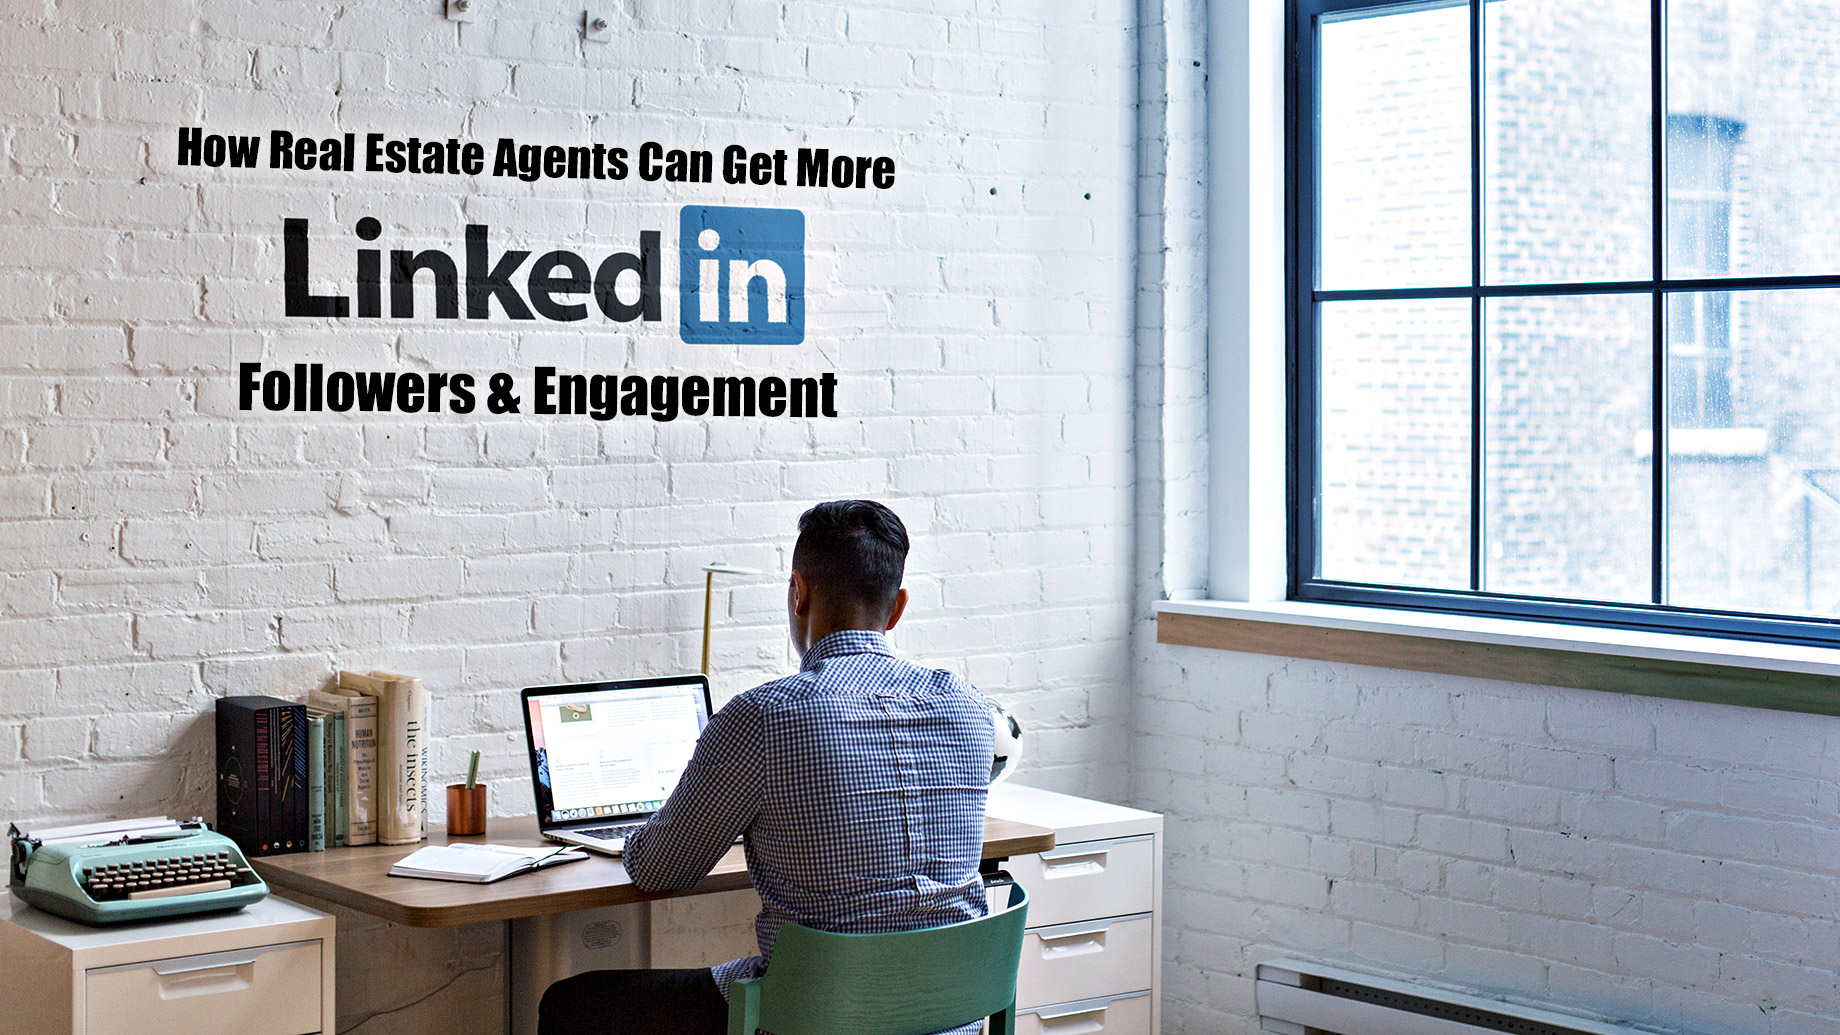 How Real Estate Agents Can Get More Linkedin Followers & Engagement